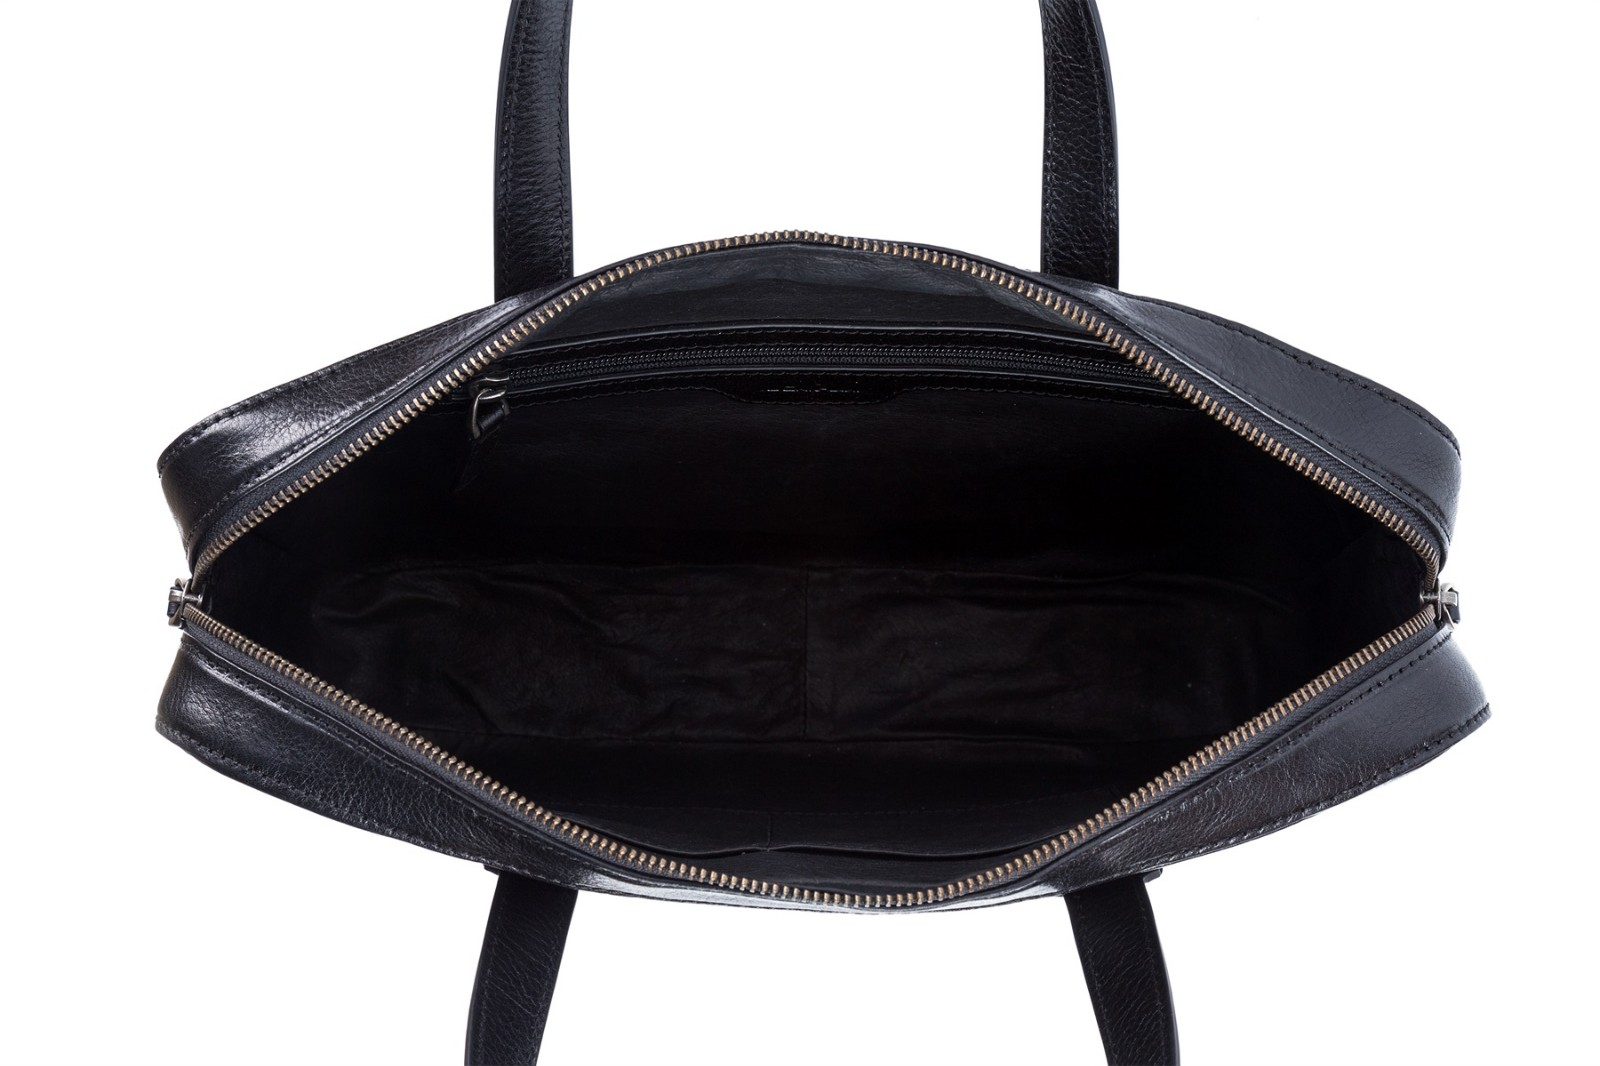 GF bags-Find Mens Briefcase Bag Professional Briefcase From Gaofeng Bags-7